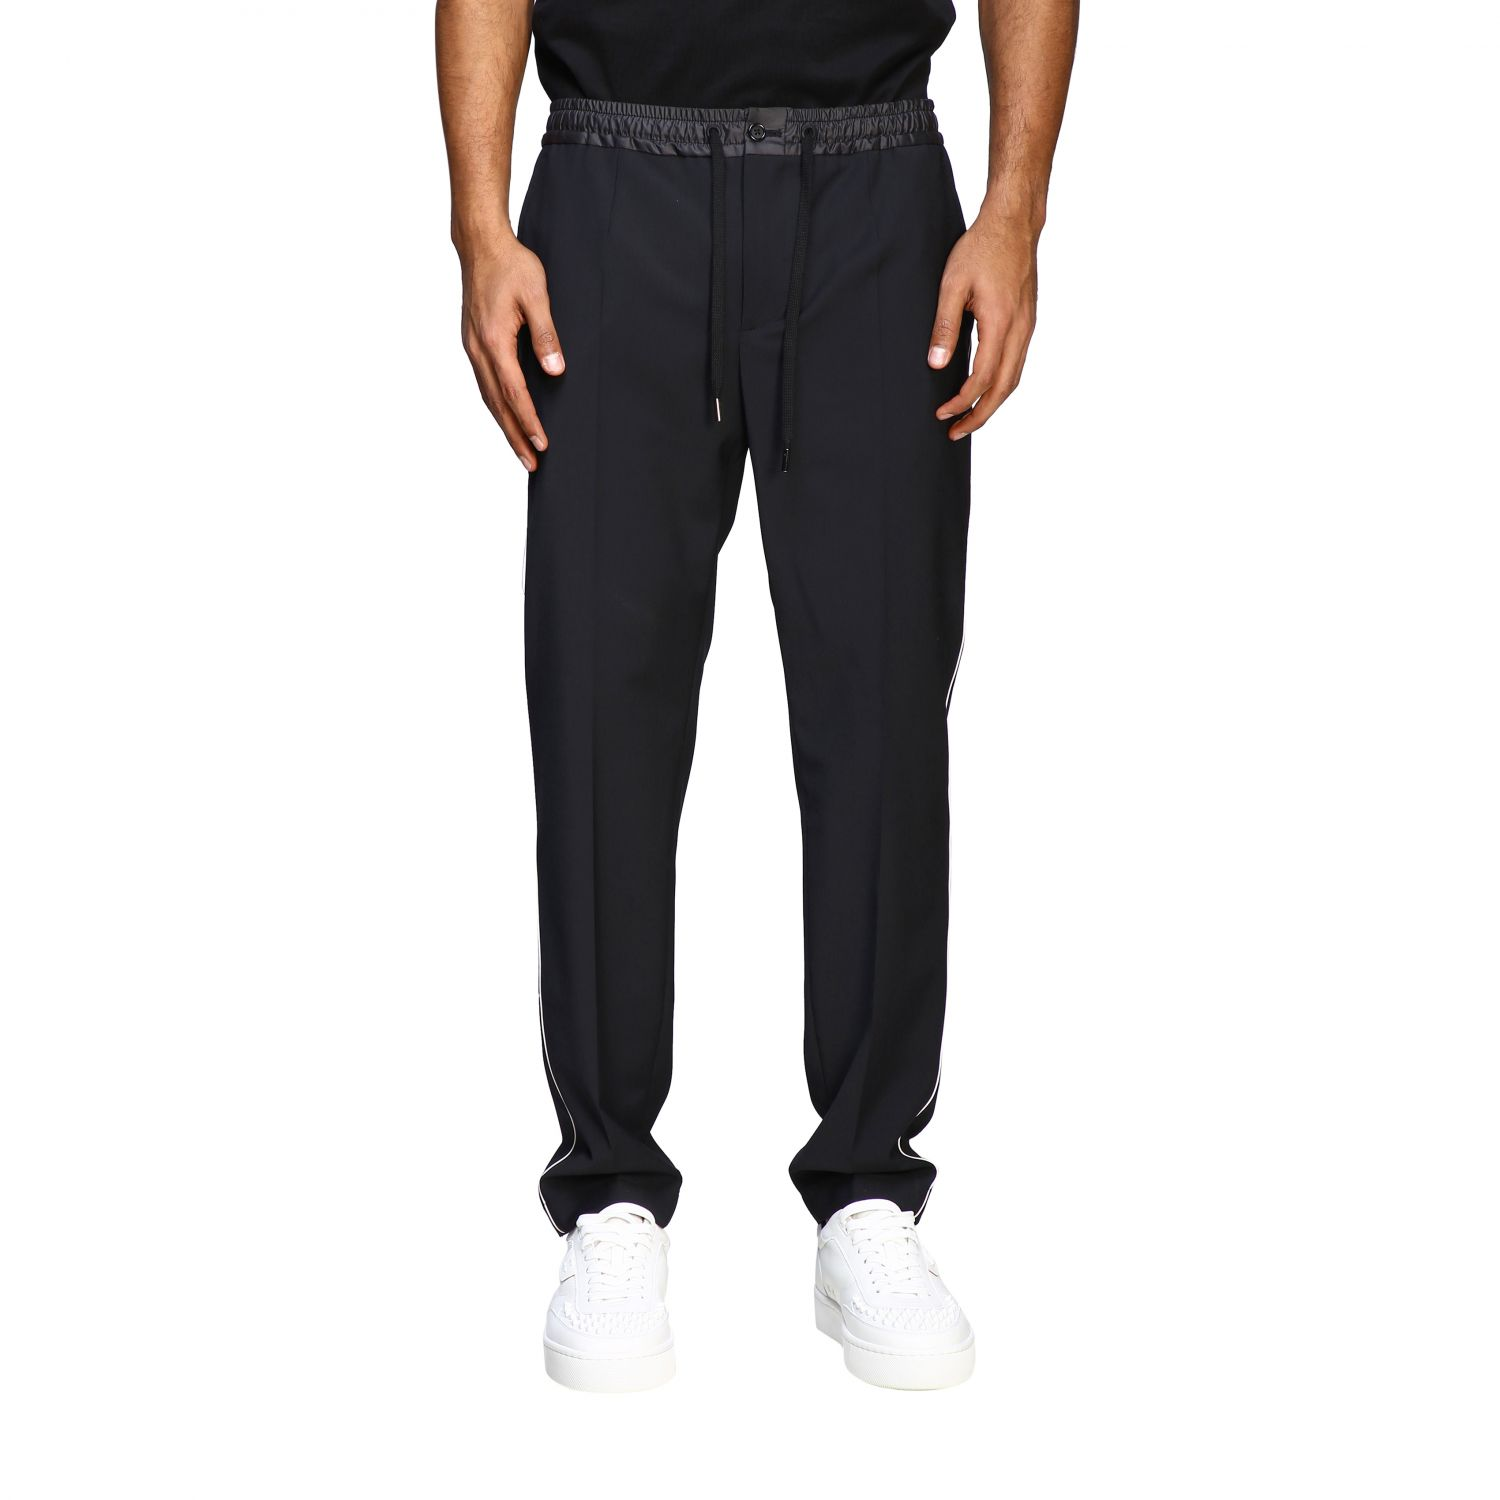 Pants Dolce & Gabbana: Dolce & Gabbana jogging style trousers with colored edges black 1